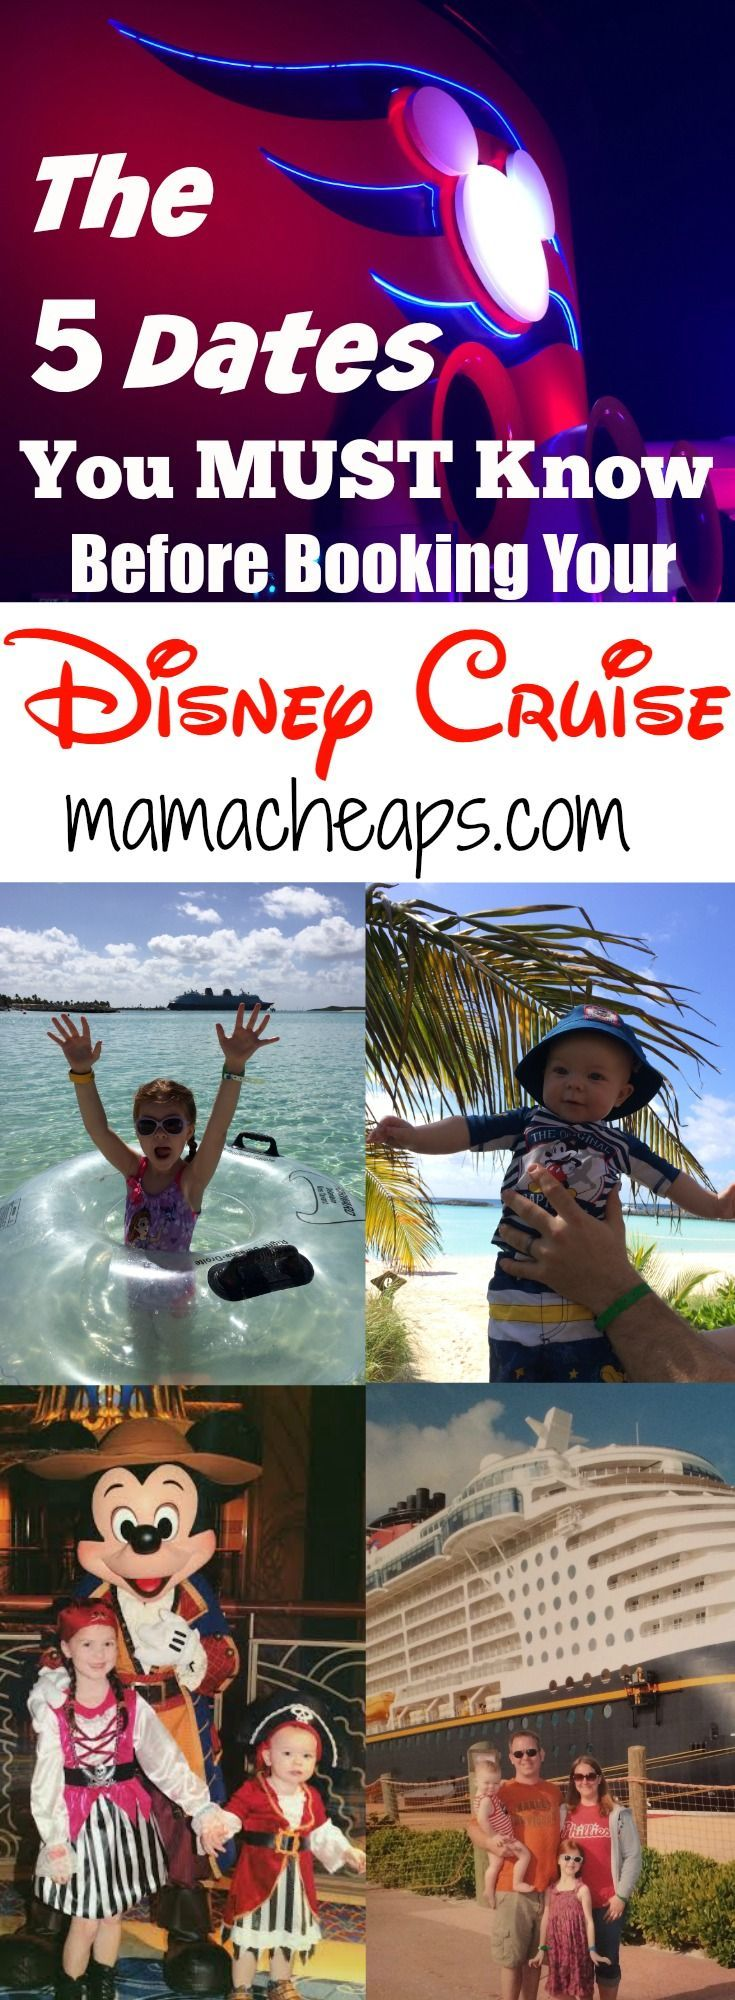 The 5 Dates You MUST Know Before Booking Your Disney Cruise